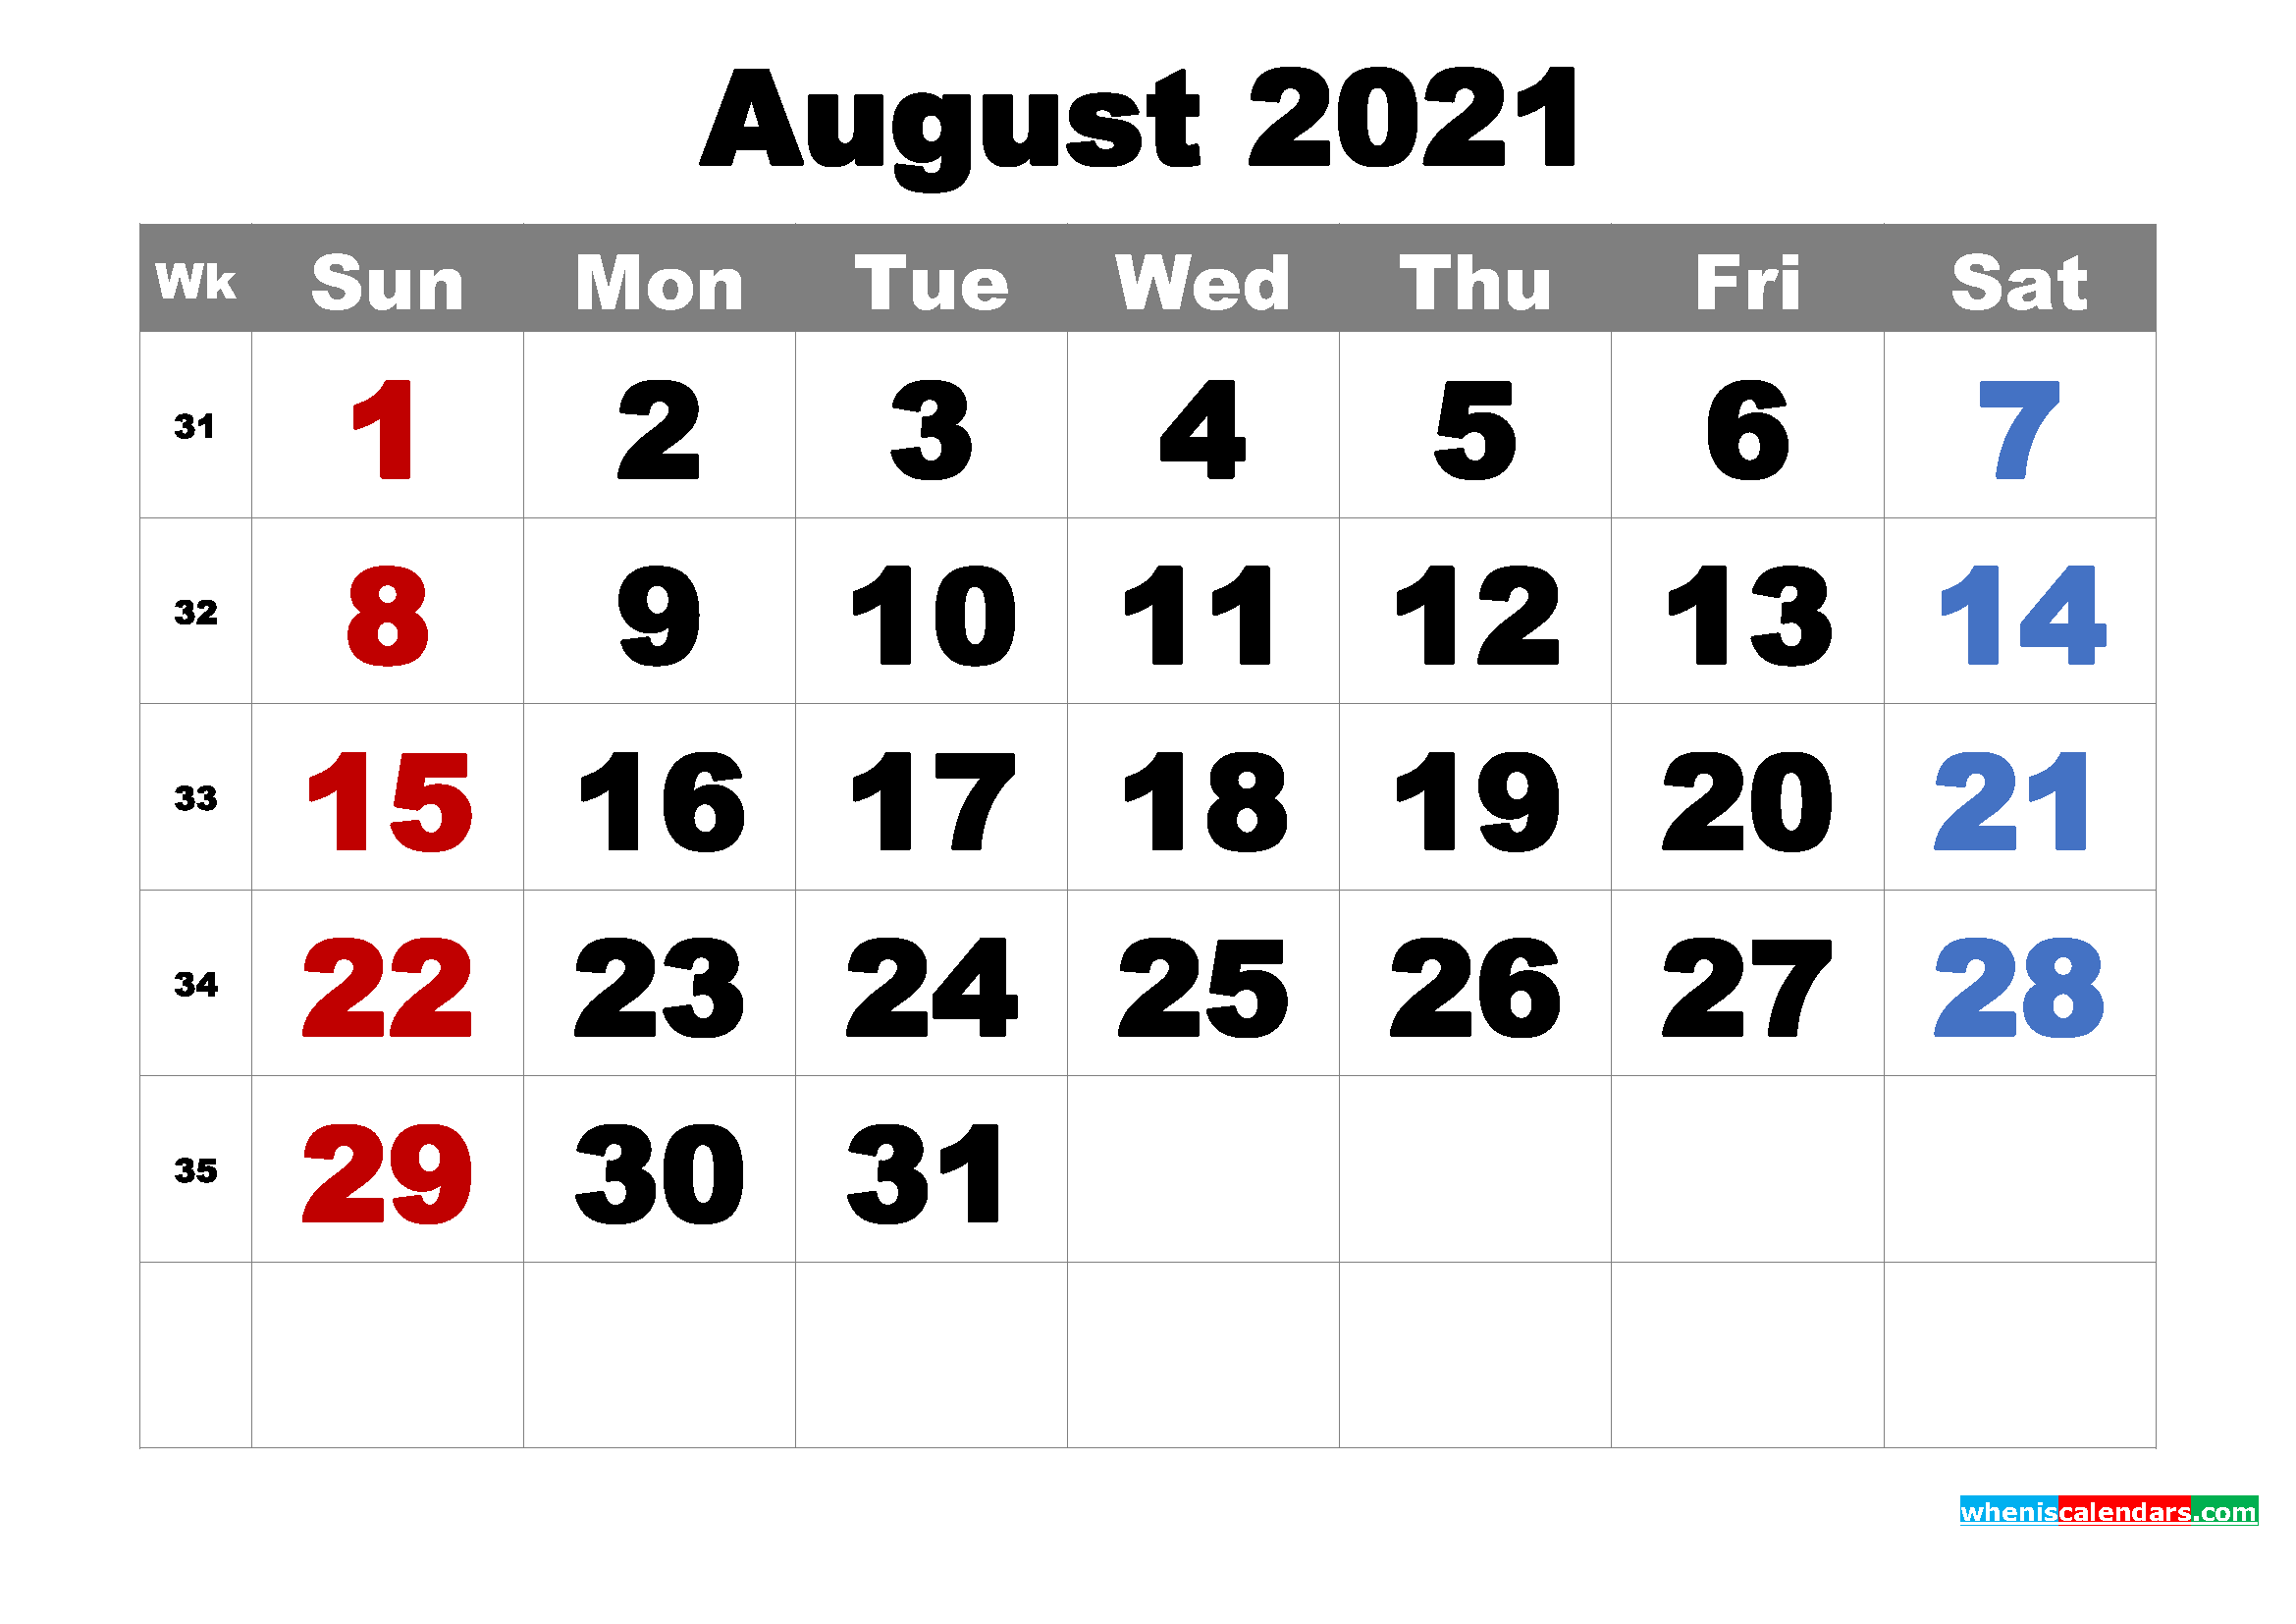 Free Printable August 2021 Calendar Word, PDF, Image ...